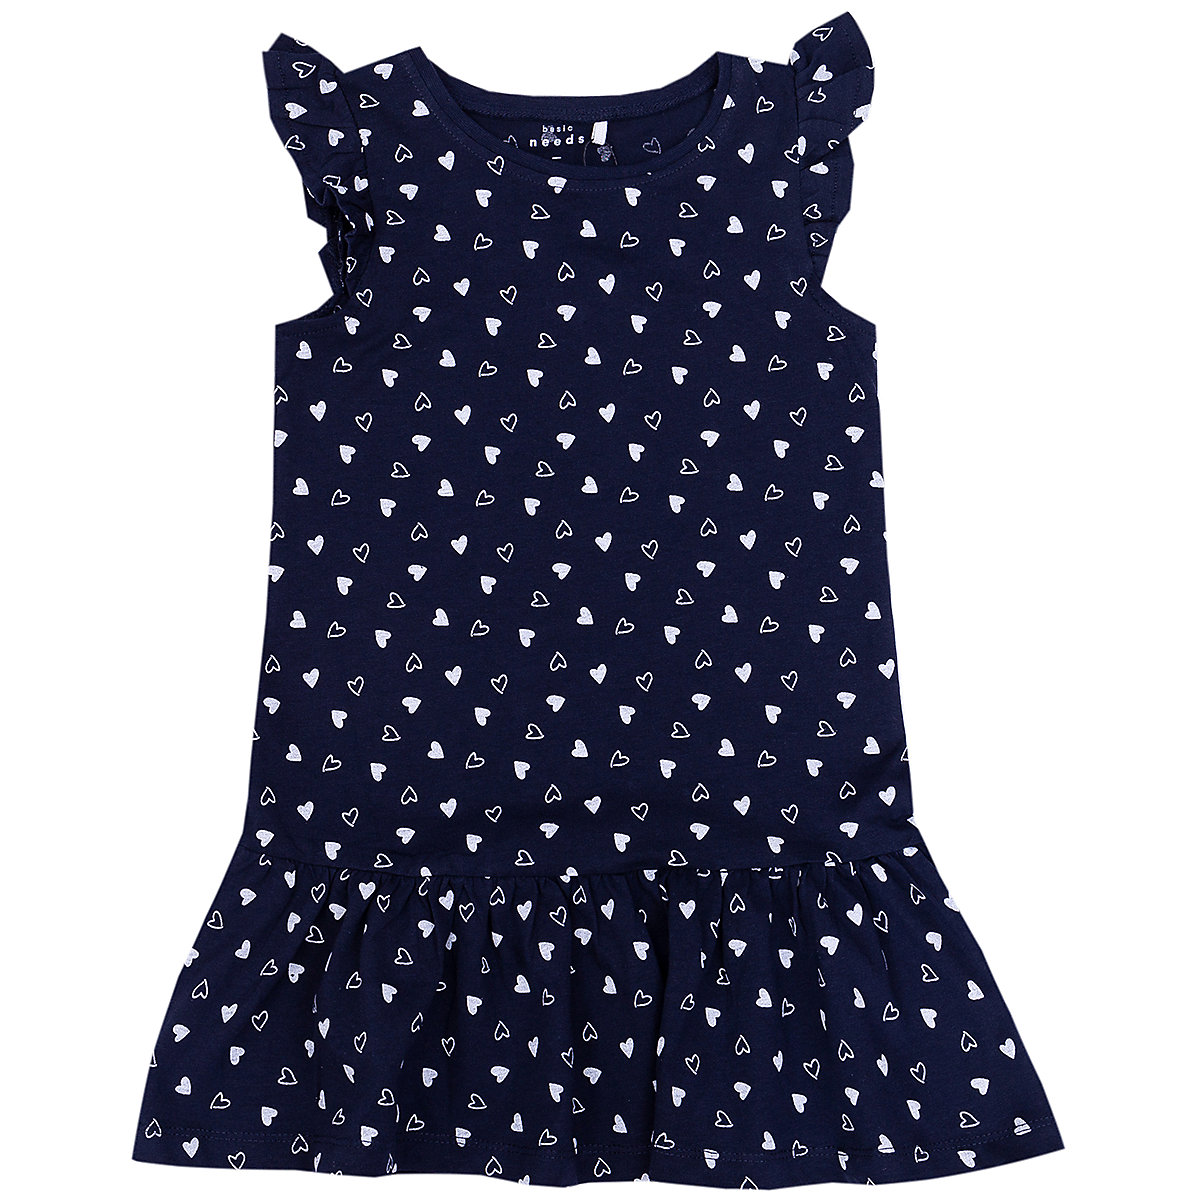 NAME IT Dresses 9383944 Dress girl children checkered pattern collar fitted silhouette sequins Cotton Casual Blue Short Sleeve stylish short sleeve sequin embellished star pattern dress for women